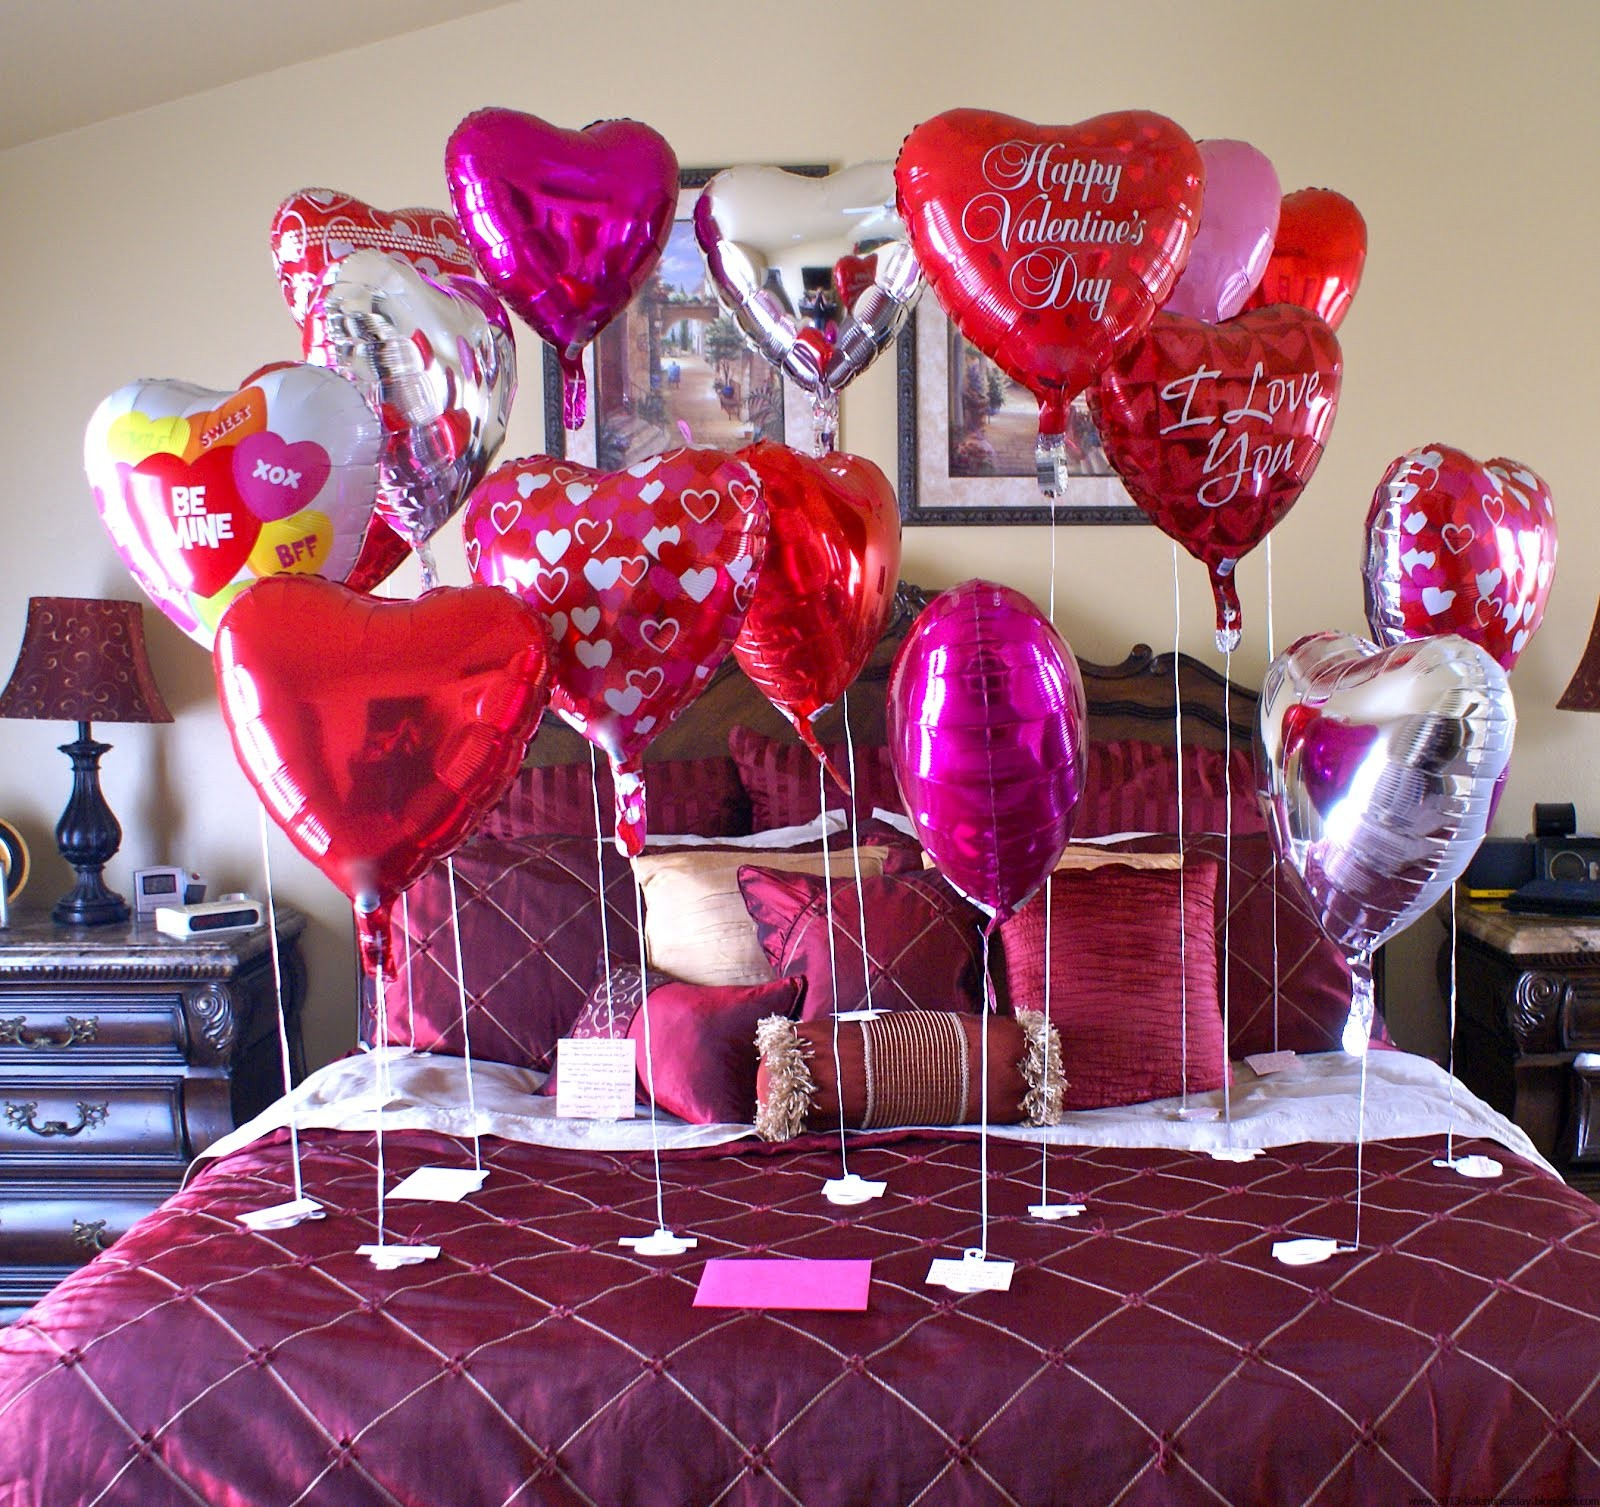 Valentine 39 s day bed room decoration ideas 2016 for Valentine decorations to make at home